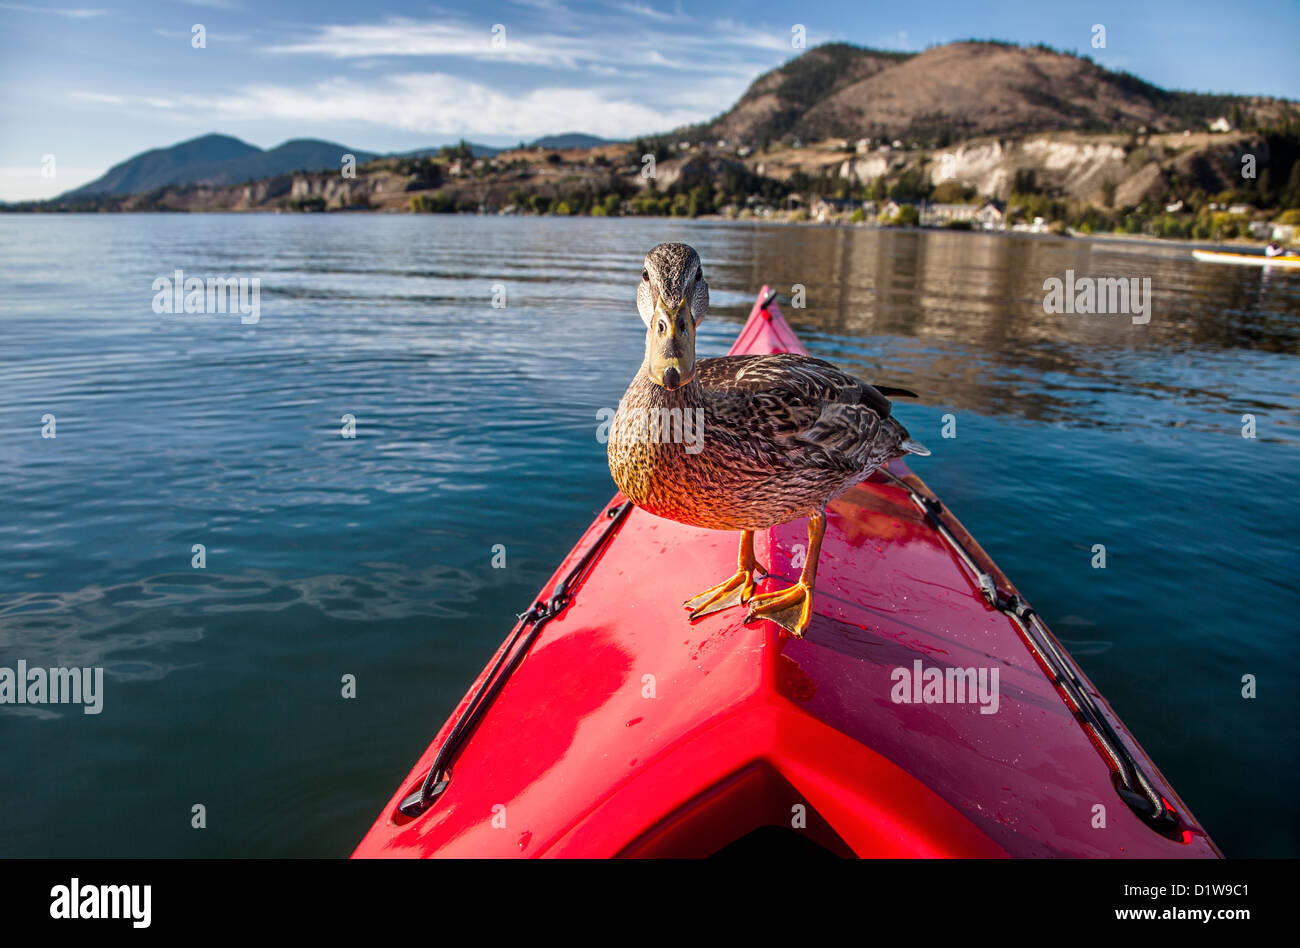 Outdoor photo of a duck standing on the bow of a red kayak on a lake - Stock Image